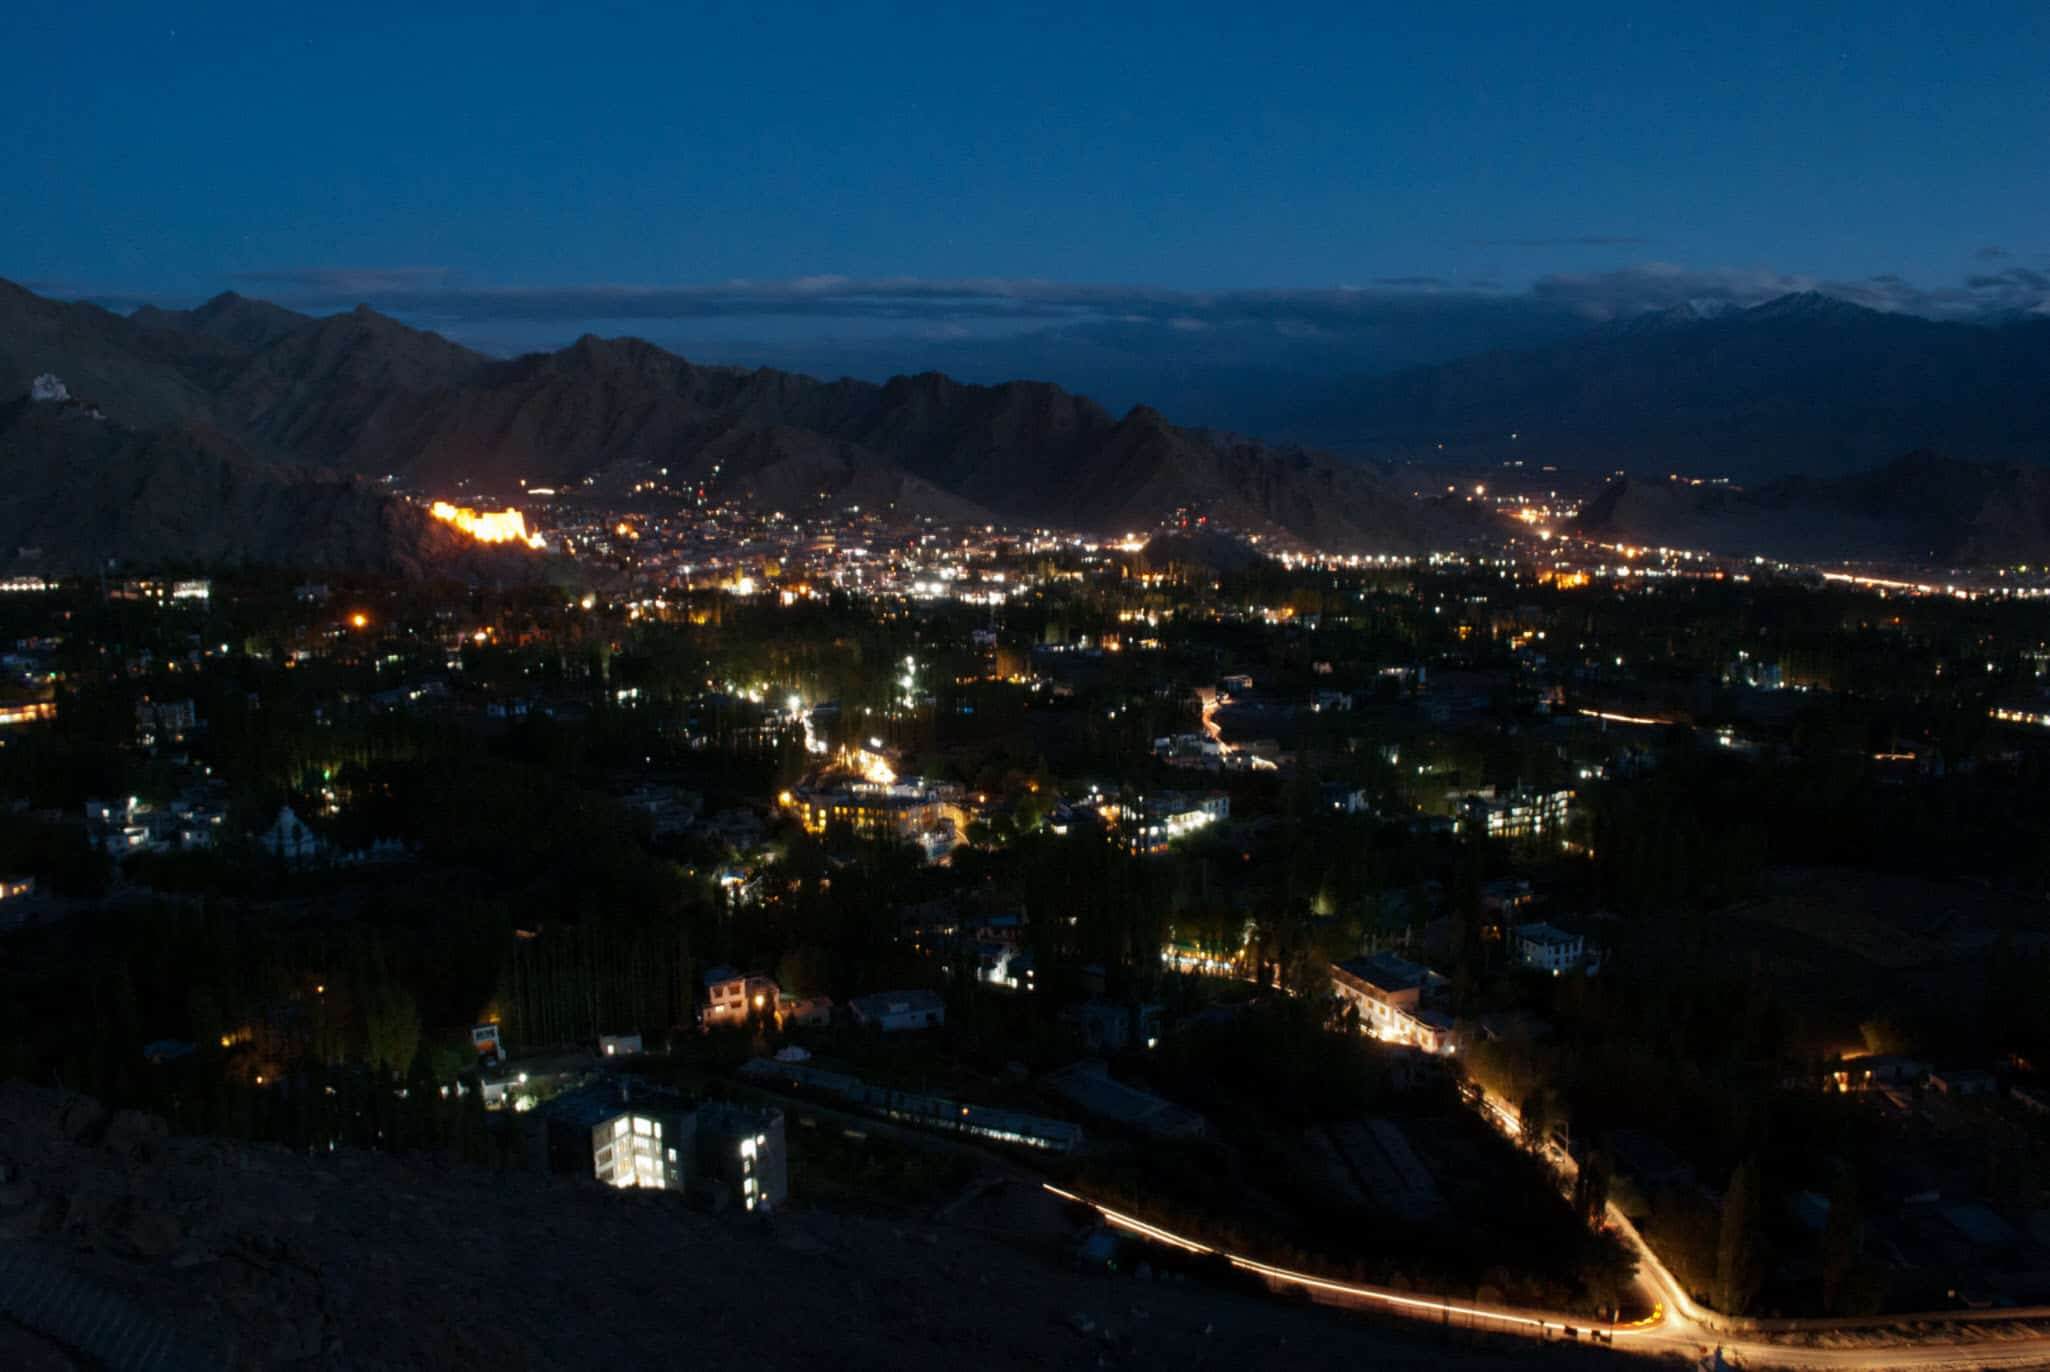 That aerial view of Leh at night